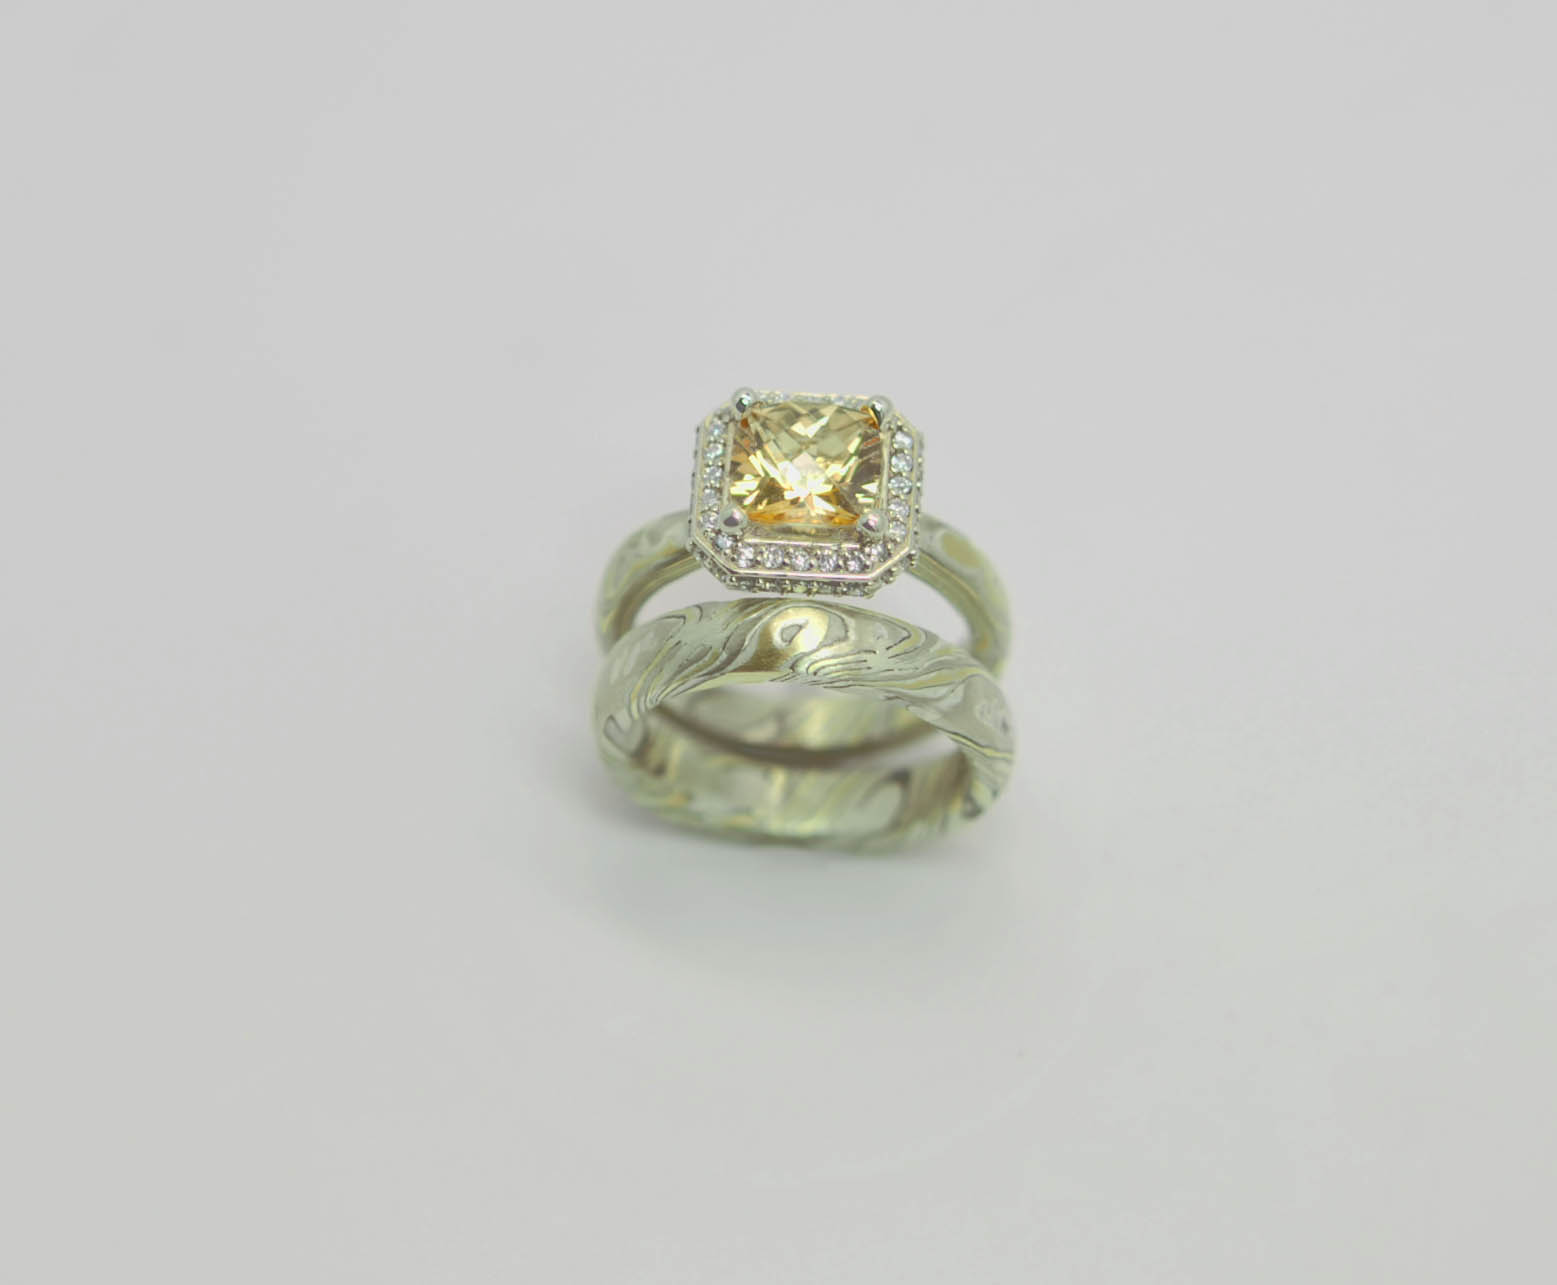 18kt yellow gold,14kt white gold,sterling silver mokume gane .25cttw diamonds and honey topaz.